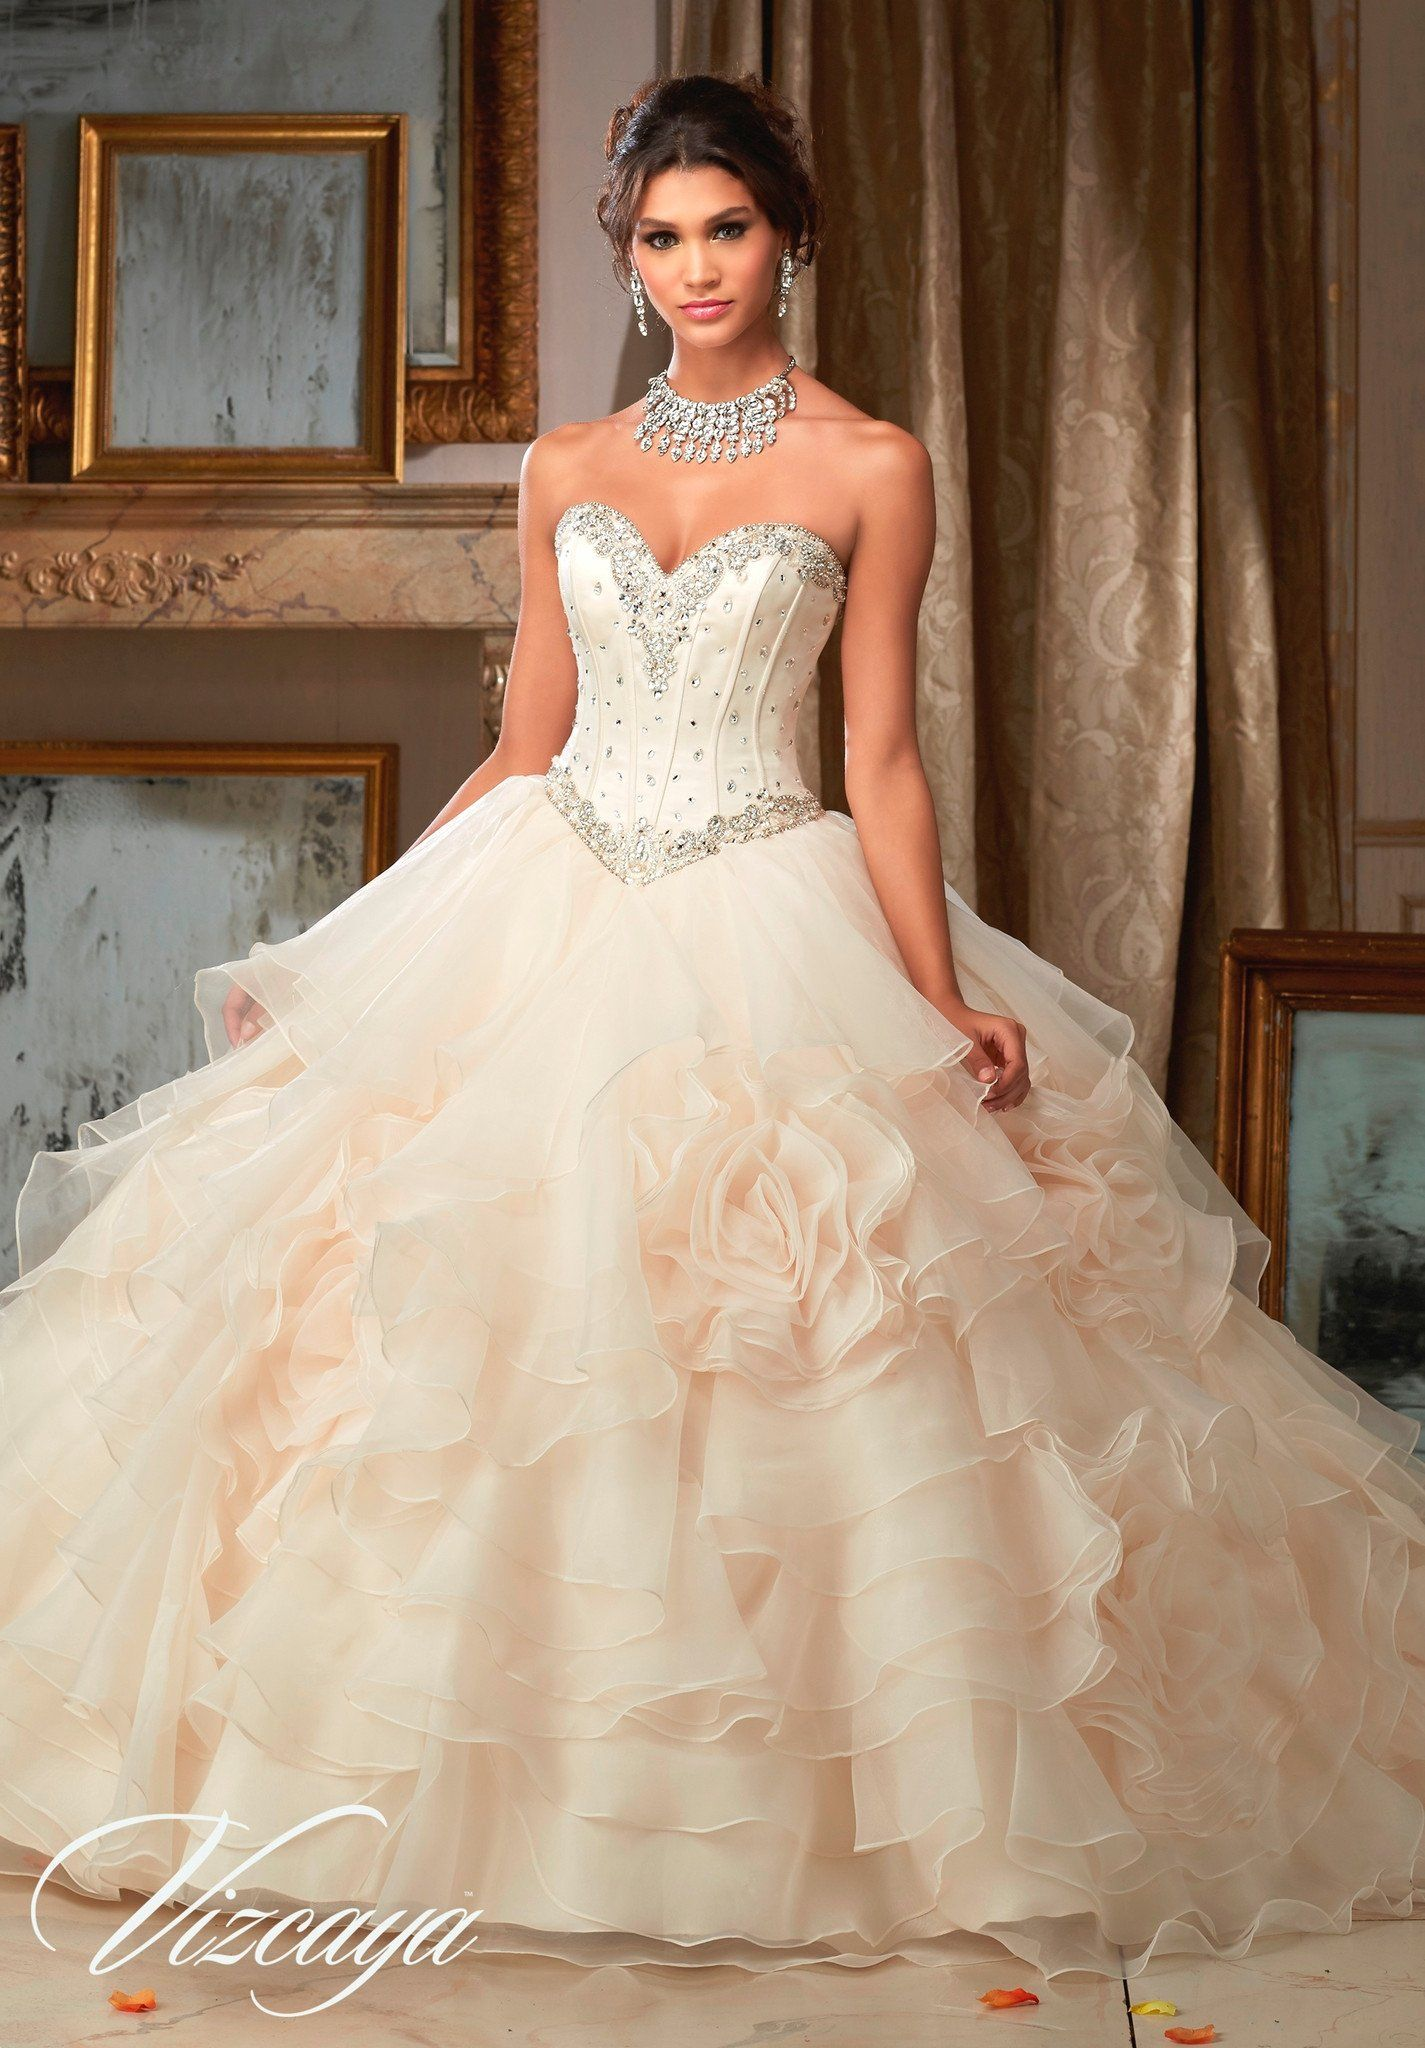 48814388ad Mori Lee Quinceanera Dress 89105 - Champagne Size 12 in 2019